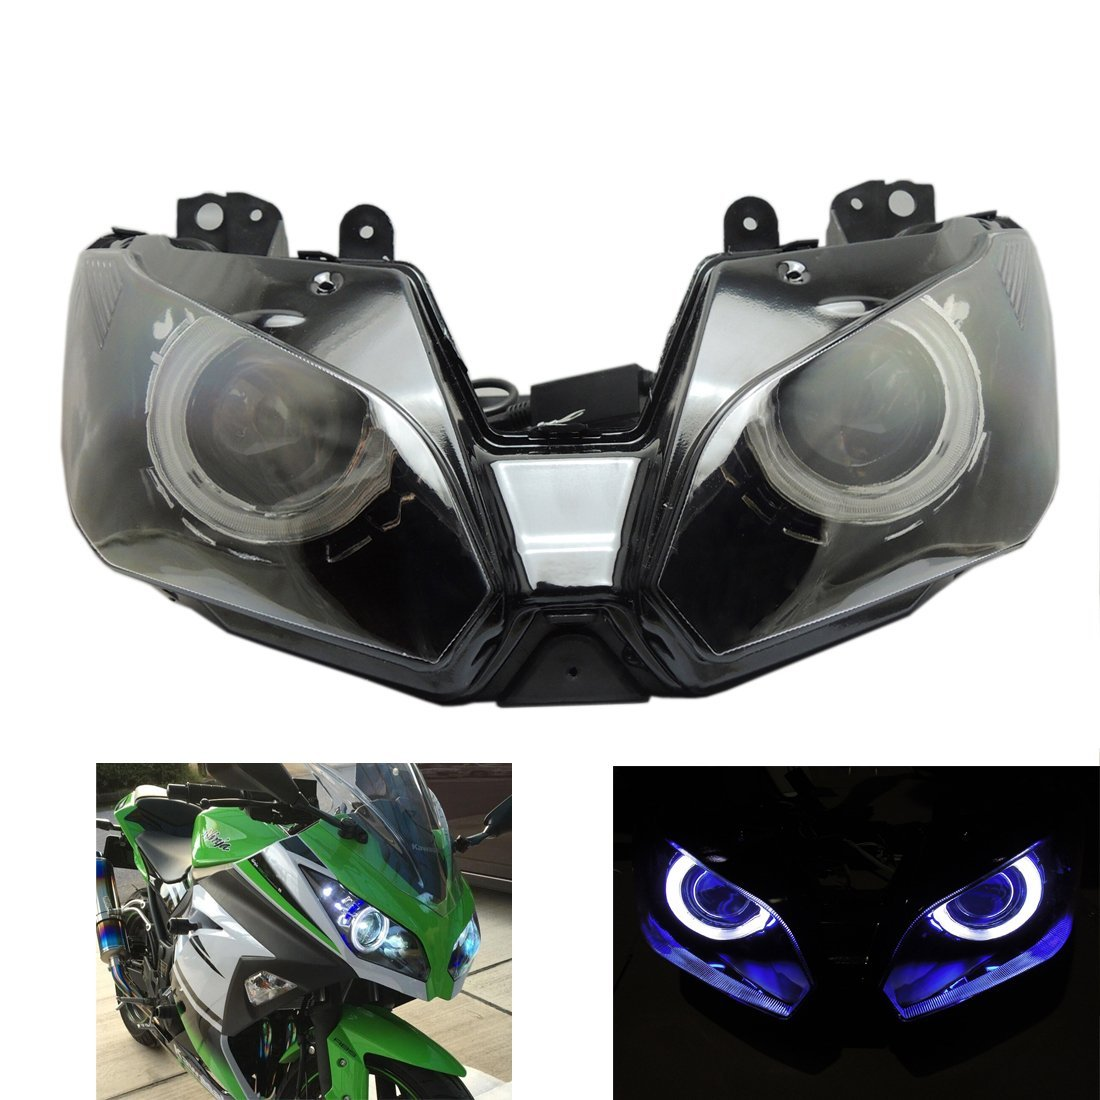 Ninja 300 Angel Eye Headlight Assembly for Kawasaki Ninja ZX6R ZX-6R, Kawasaki Ninja 300 2013 2014 2015 2016 Blue Demon Eye